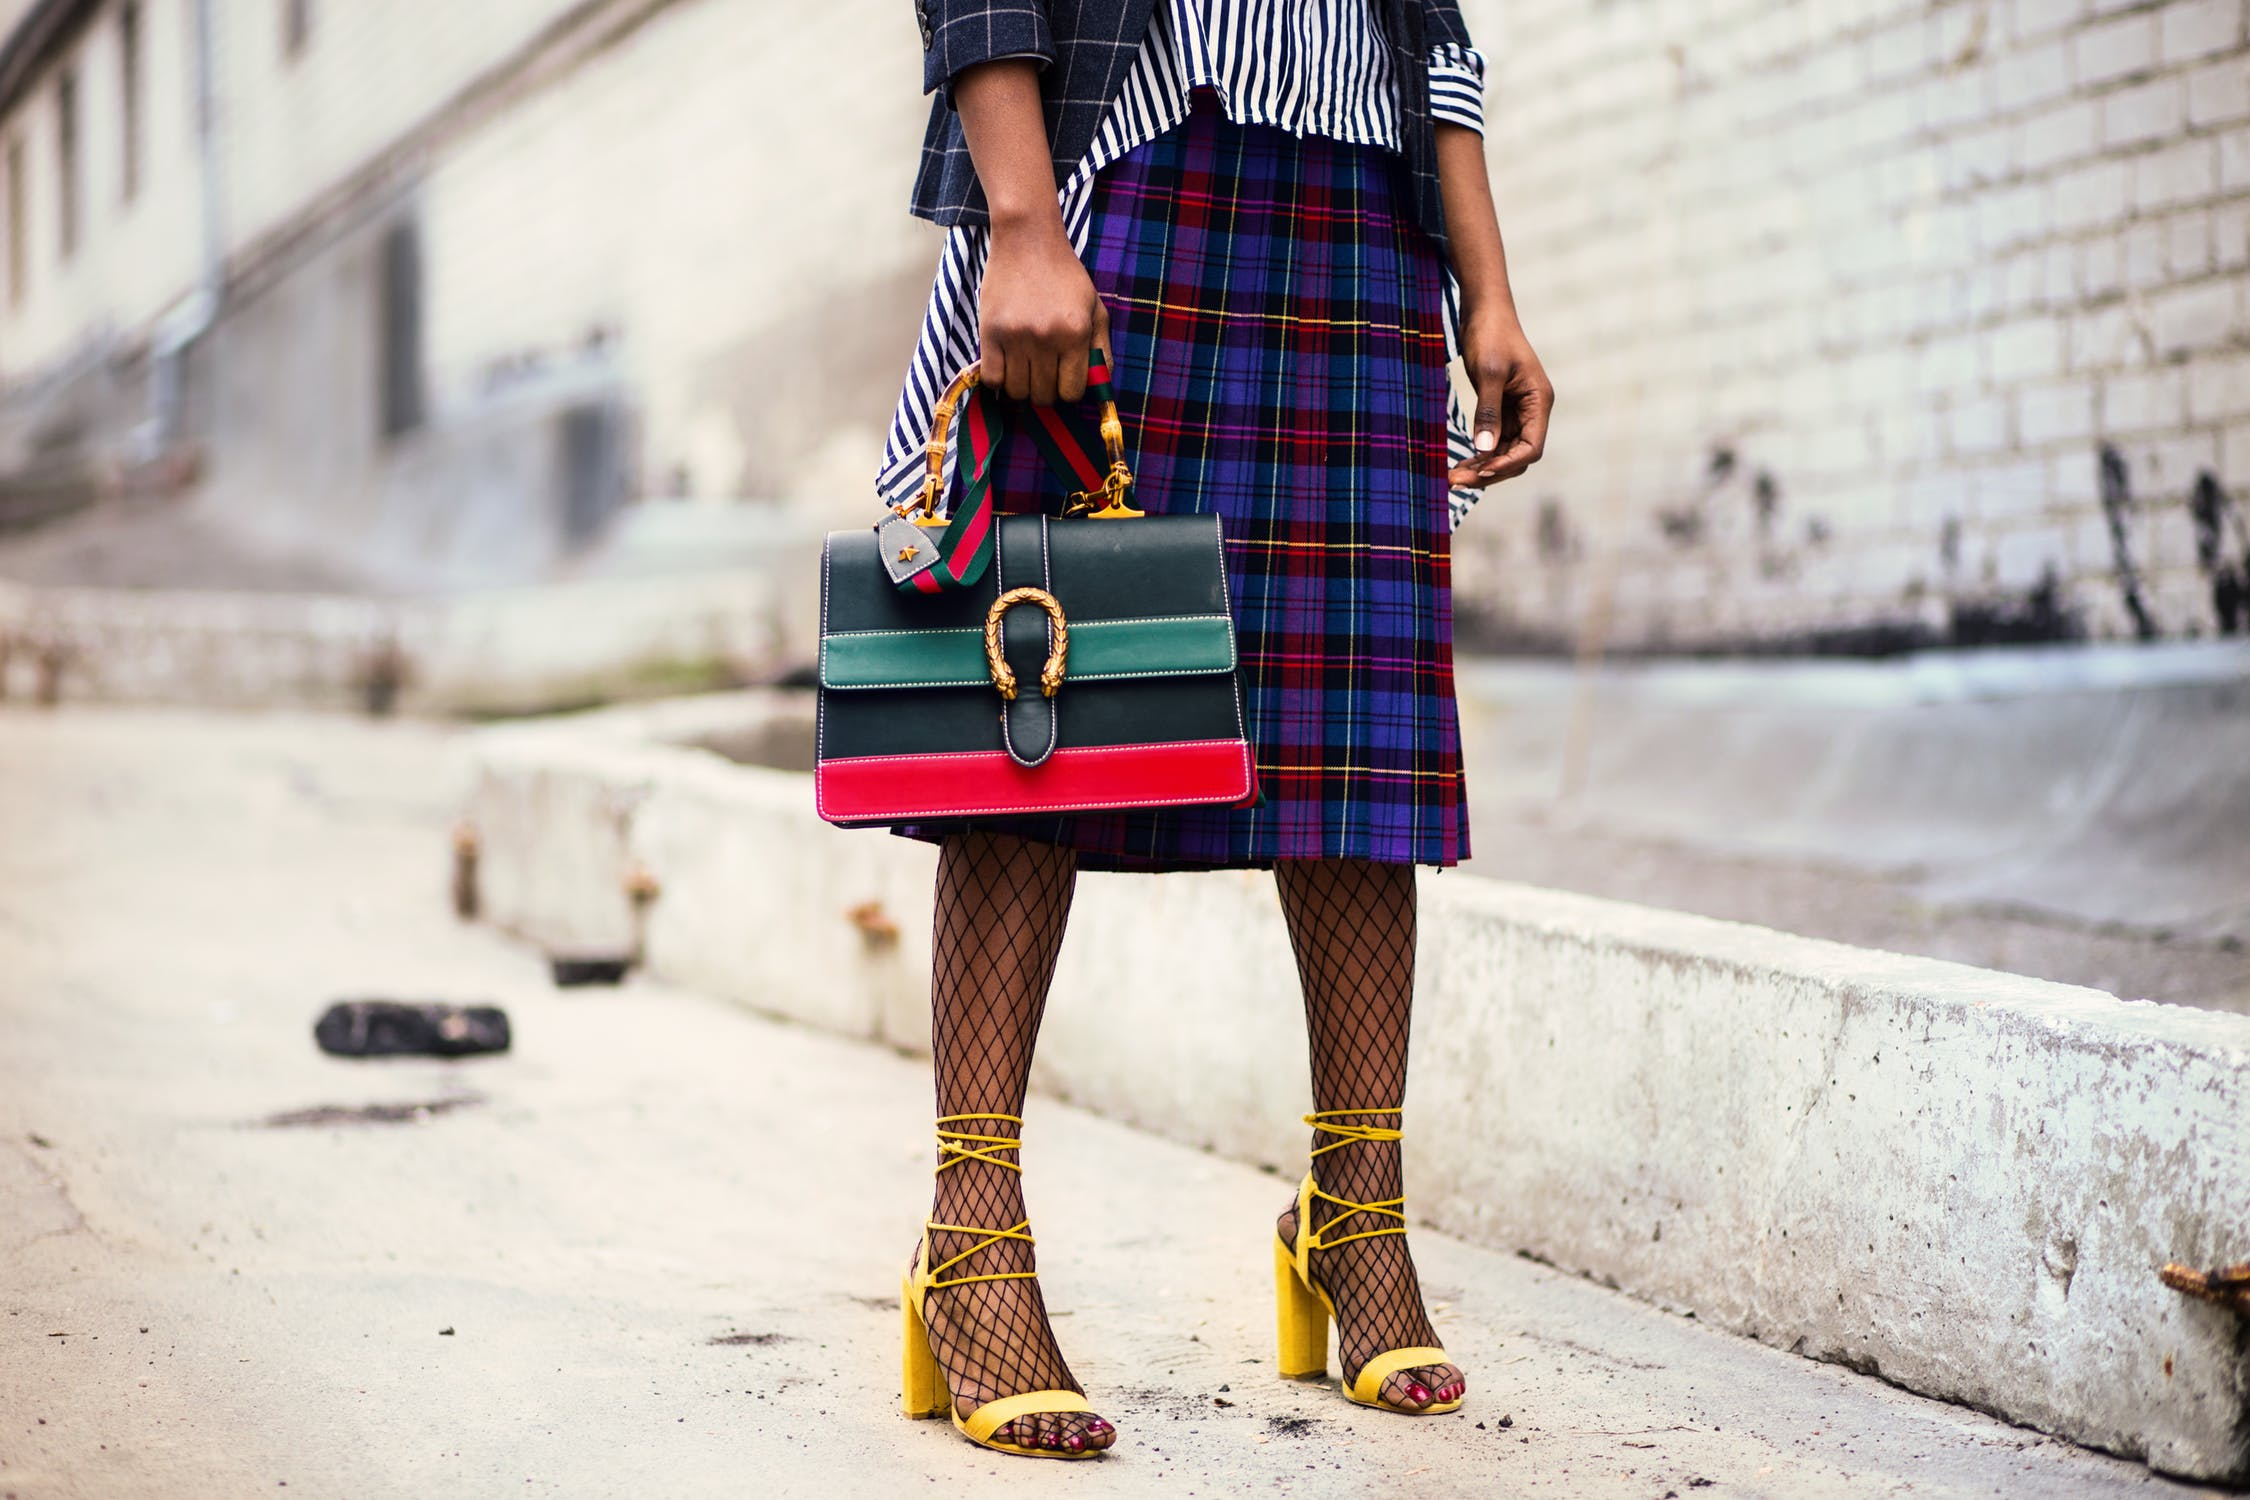 High-Quality Clothes for Women- All the Clues You Need to Use when Buying